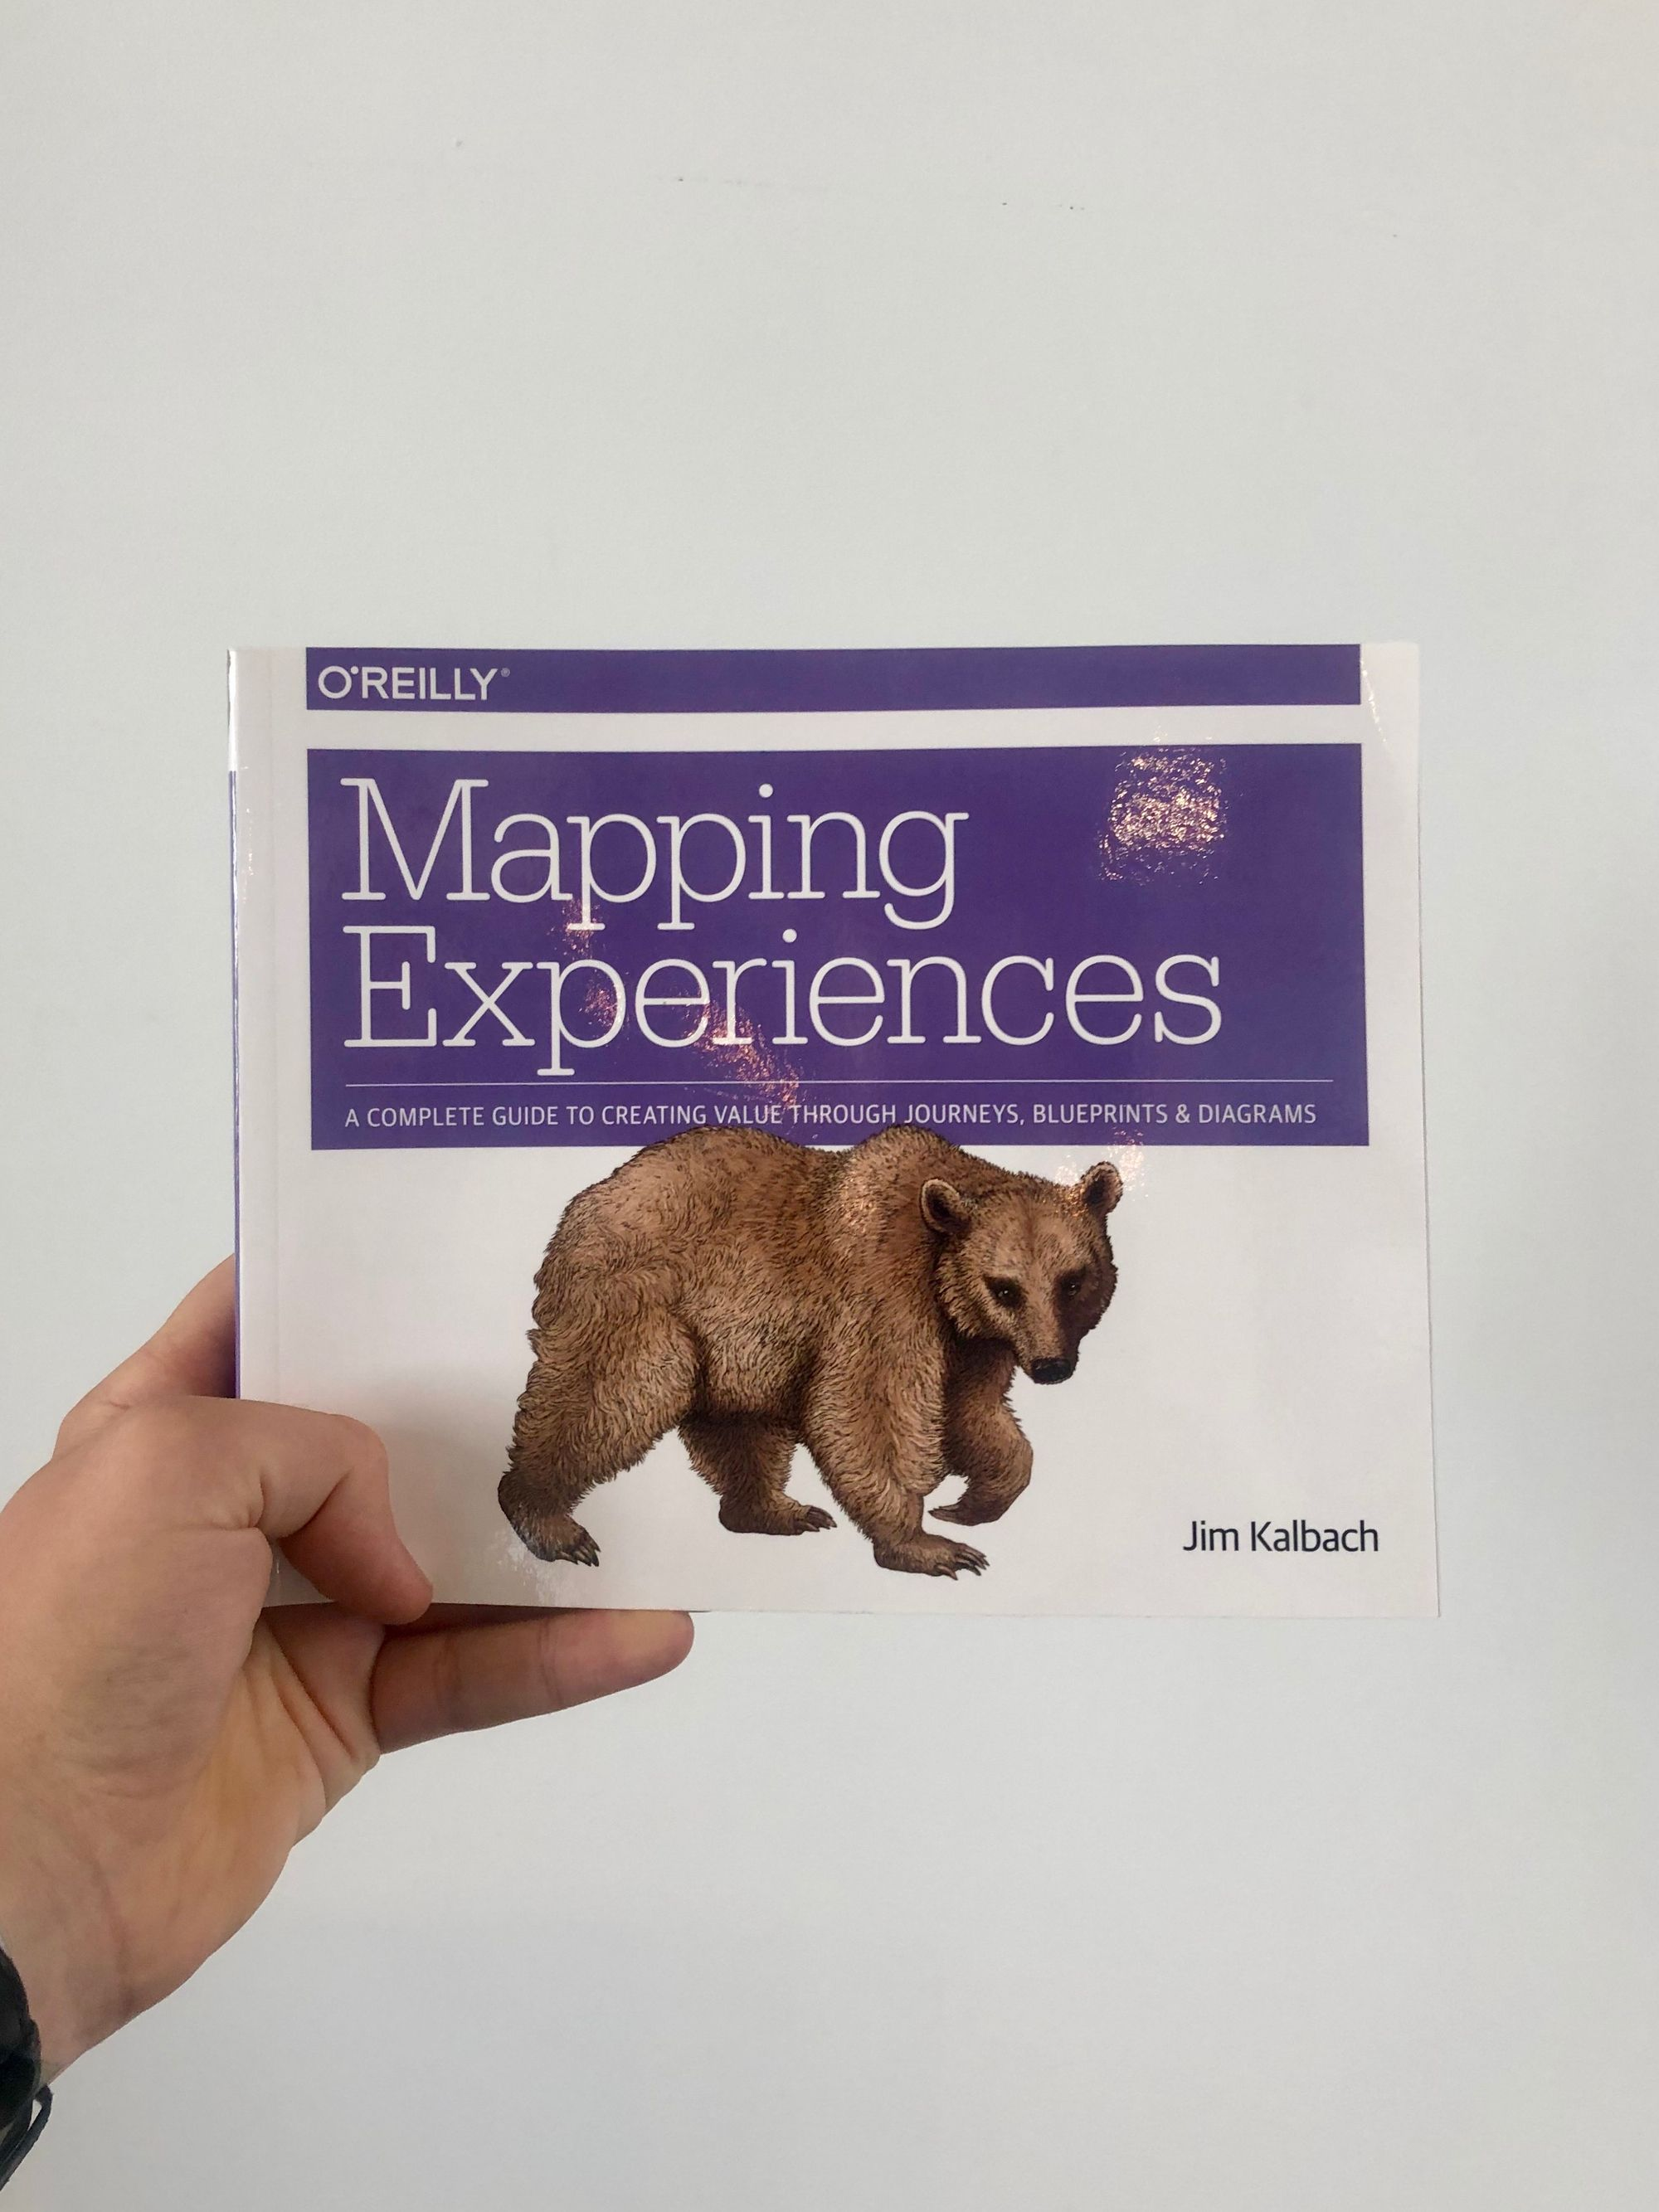 Mapping Experiences Aplete Guide To Creating Value Through Journeys Bluepri Nts And Diagrams